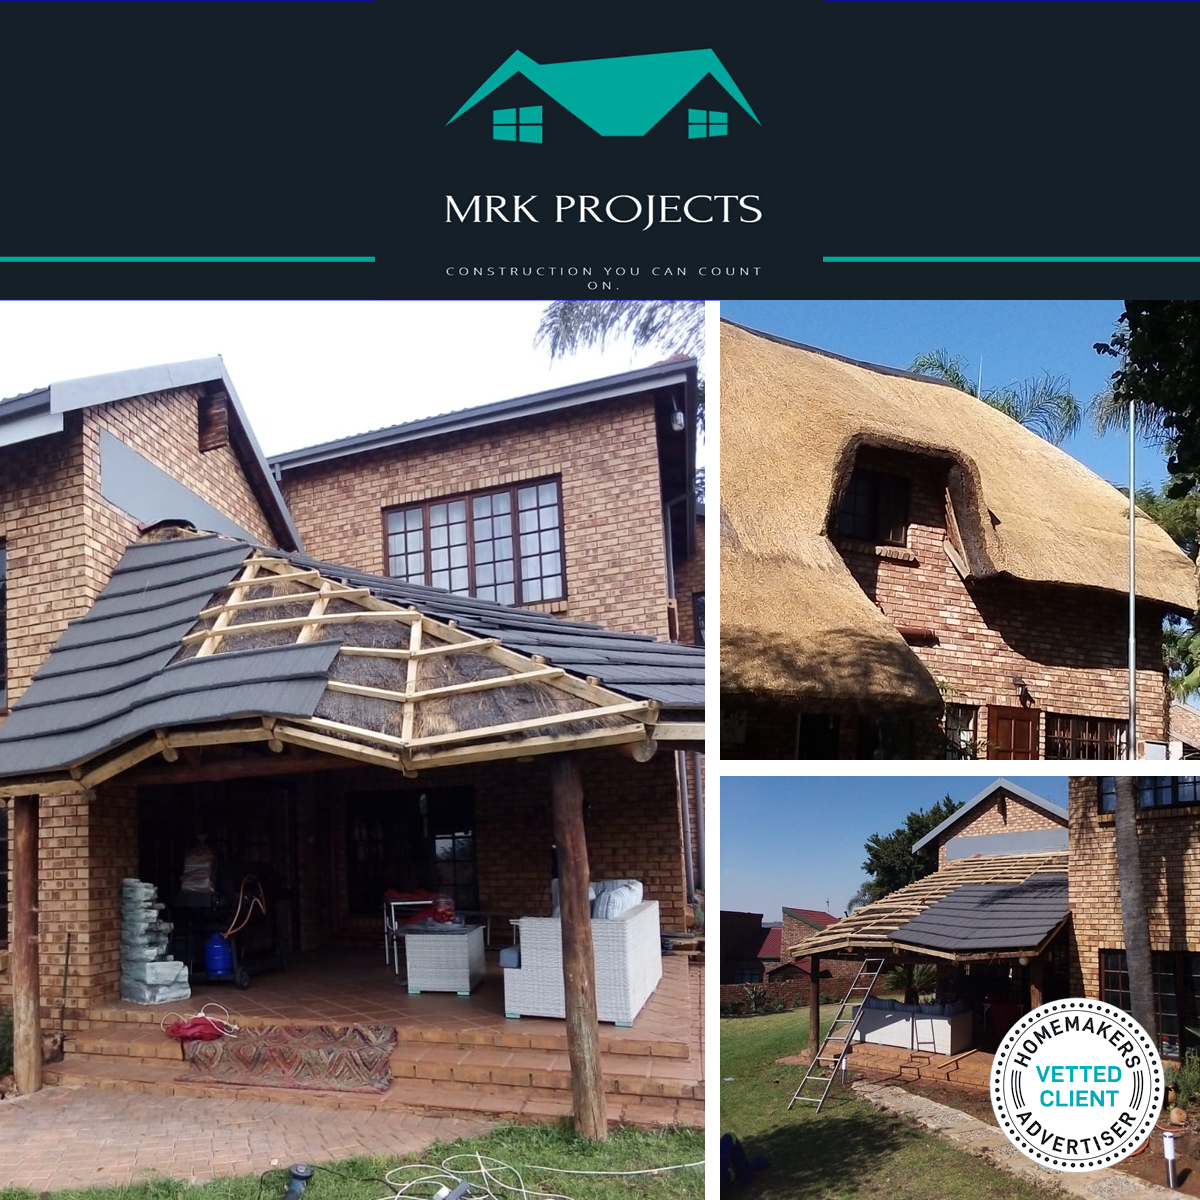 MRK Projects